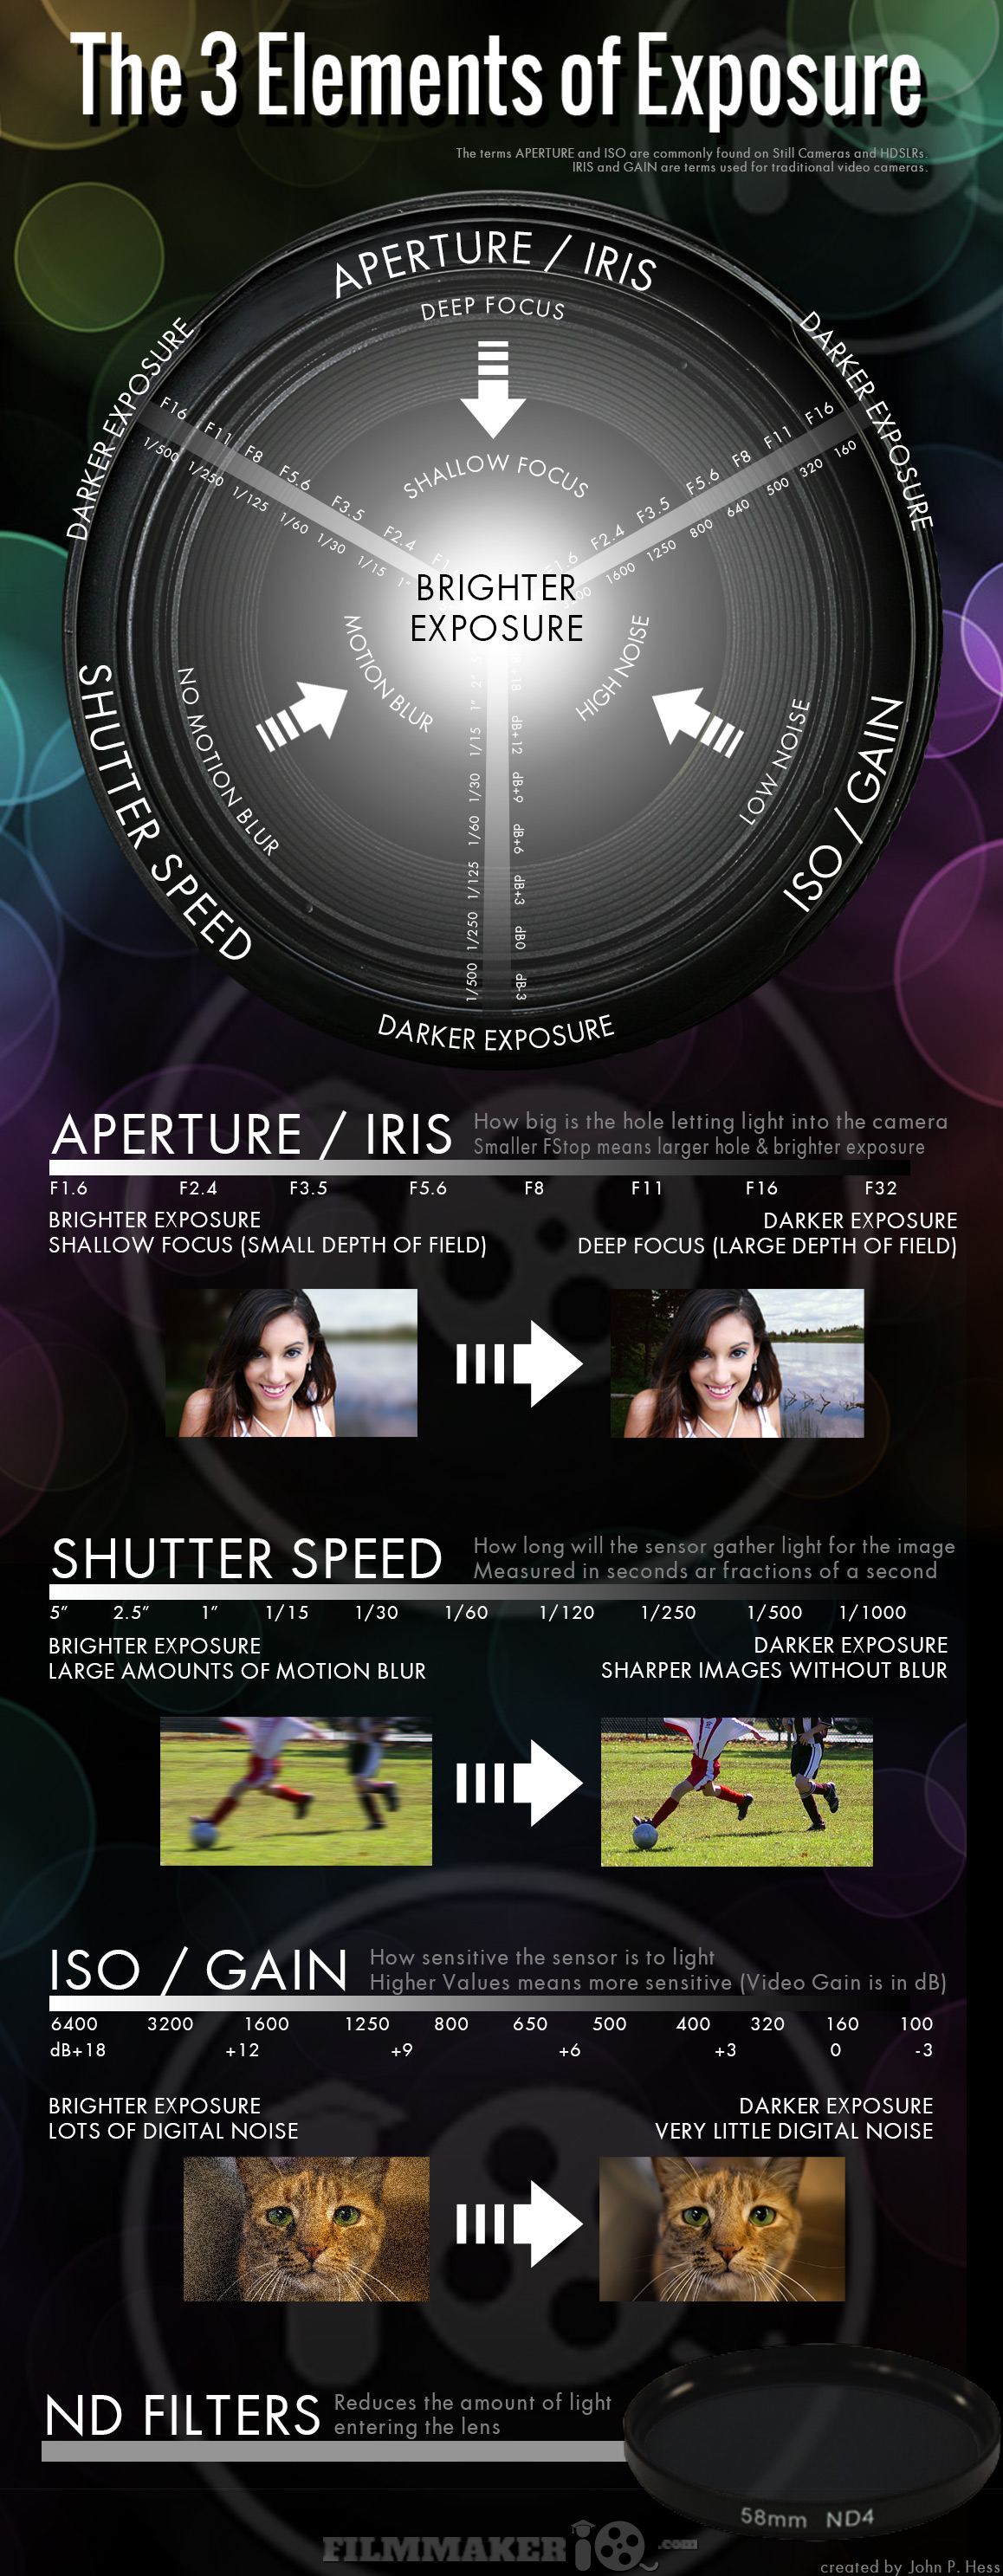 3-Elements-Of-Exposure-infographic